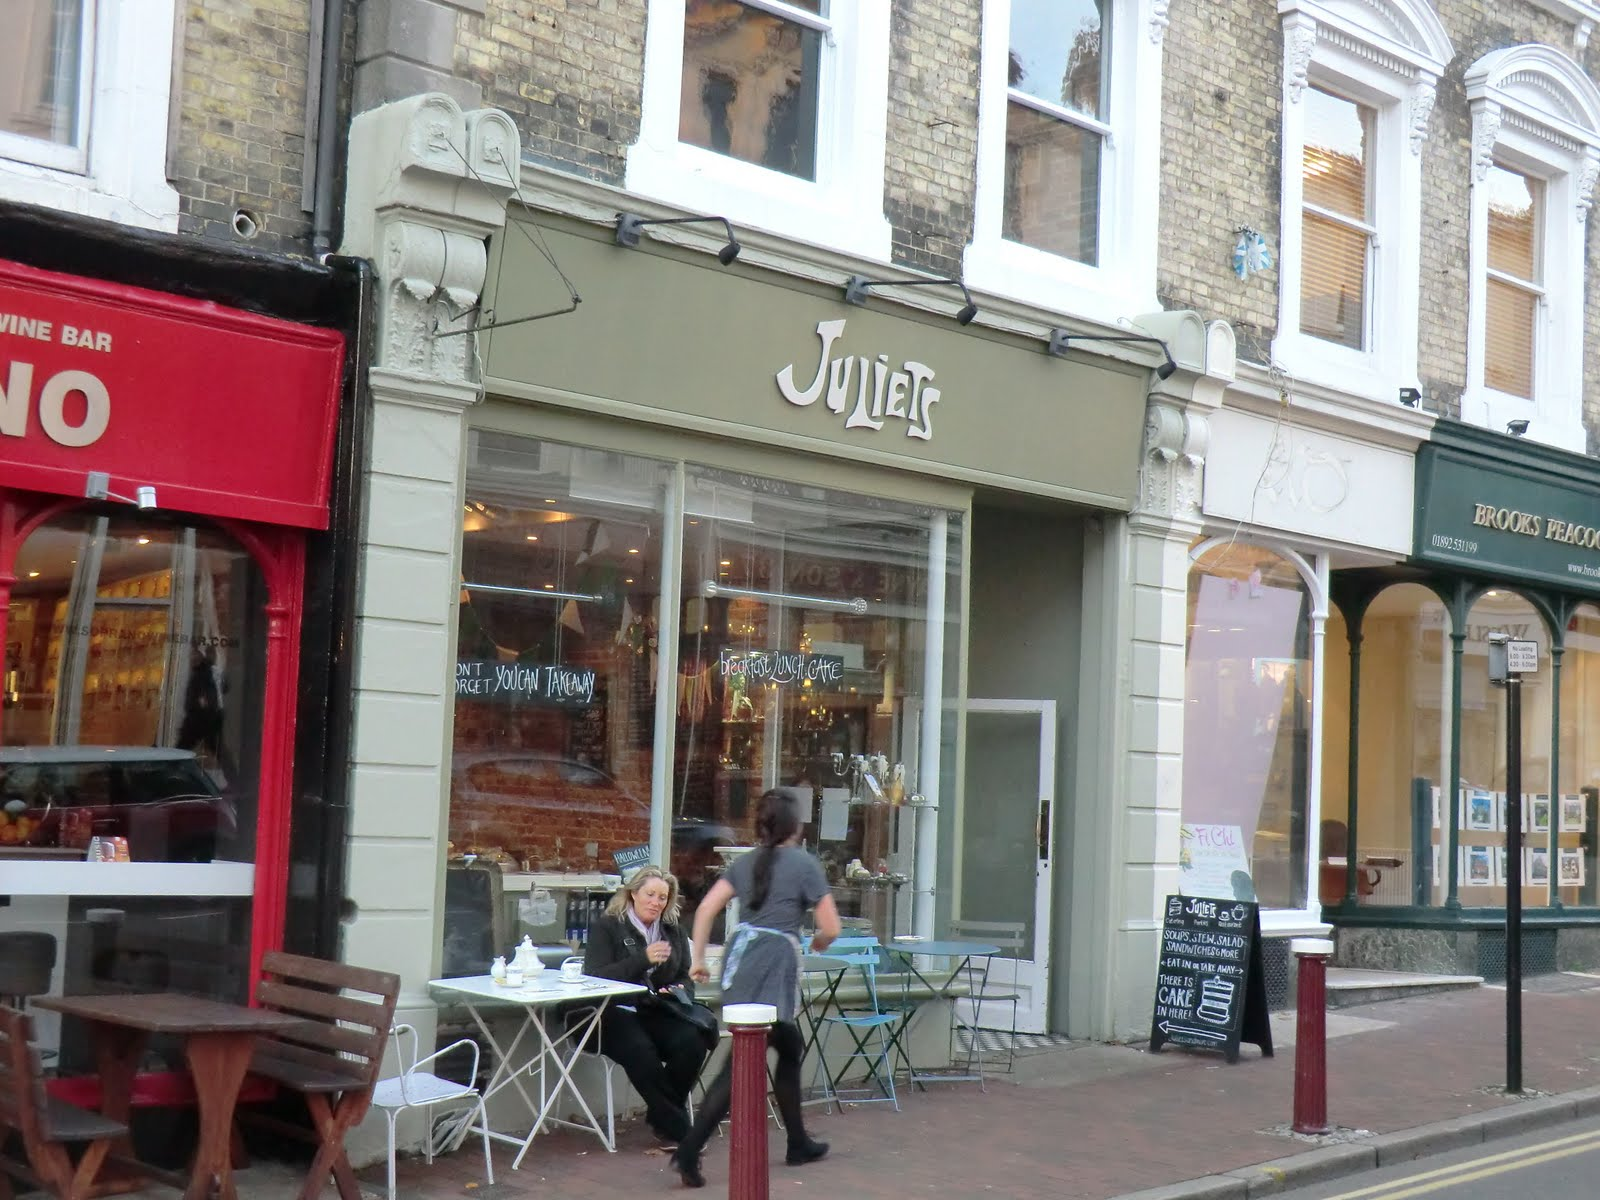 CIMG9078 Juliets, Tunbridge Wells High Street